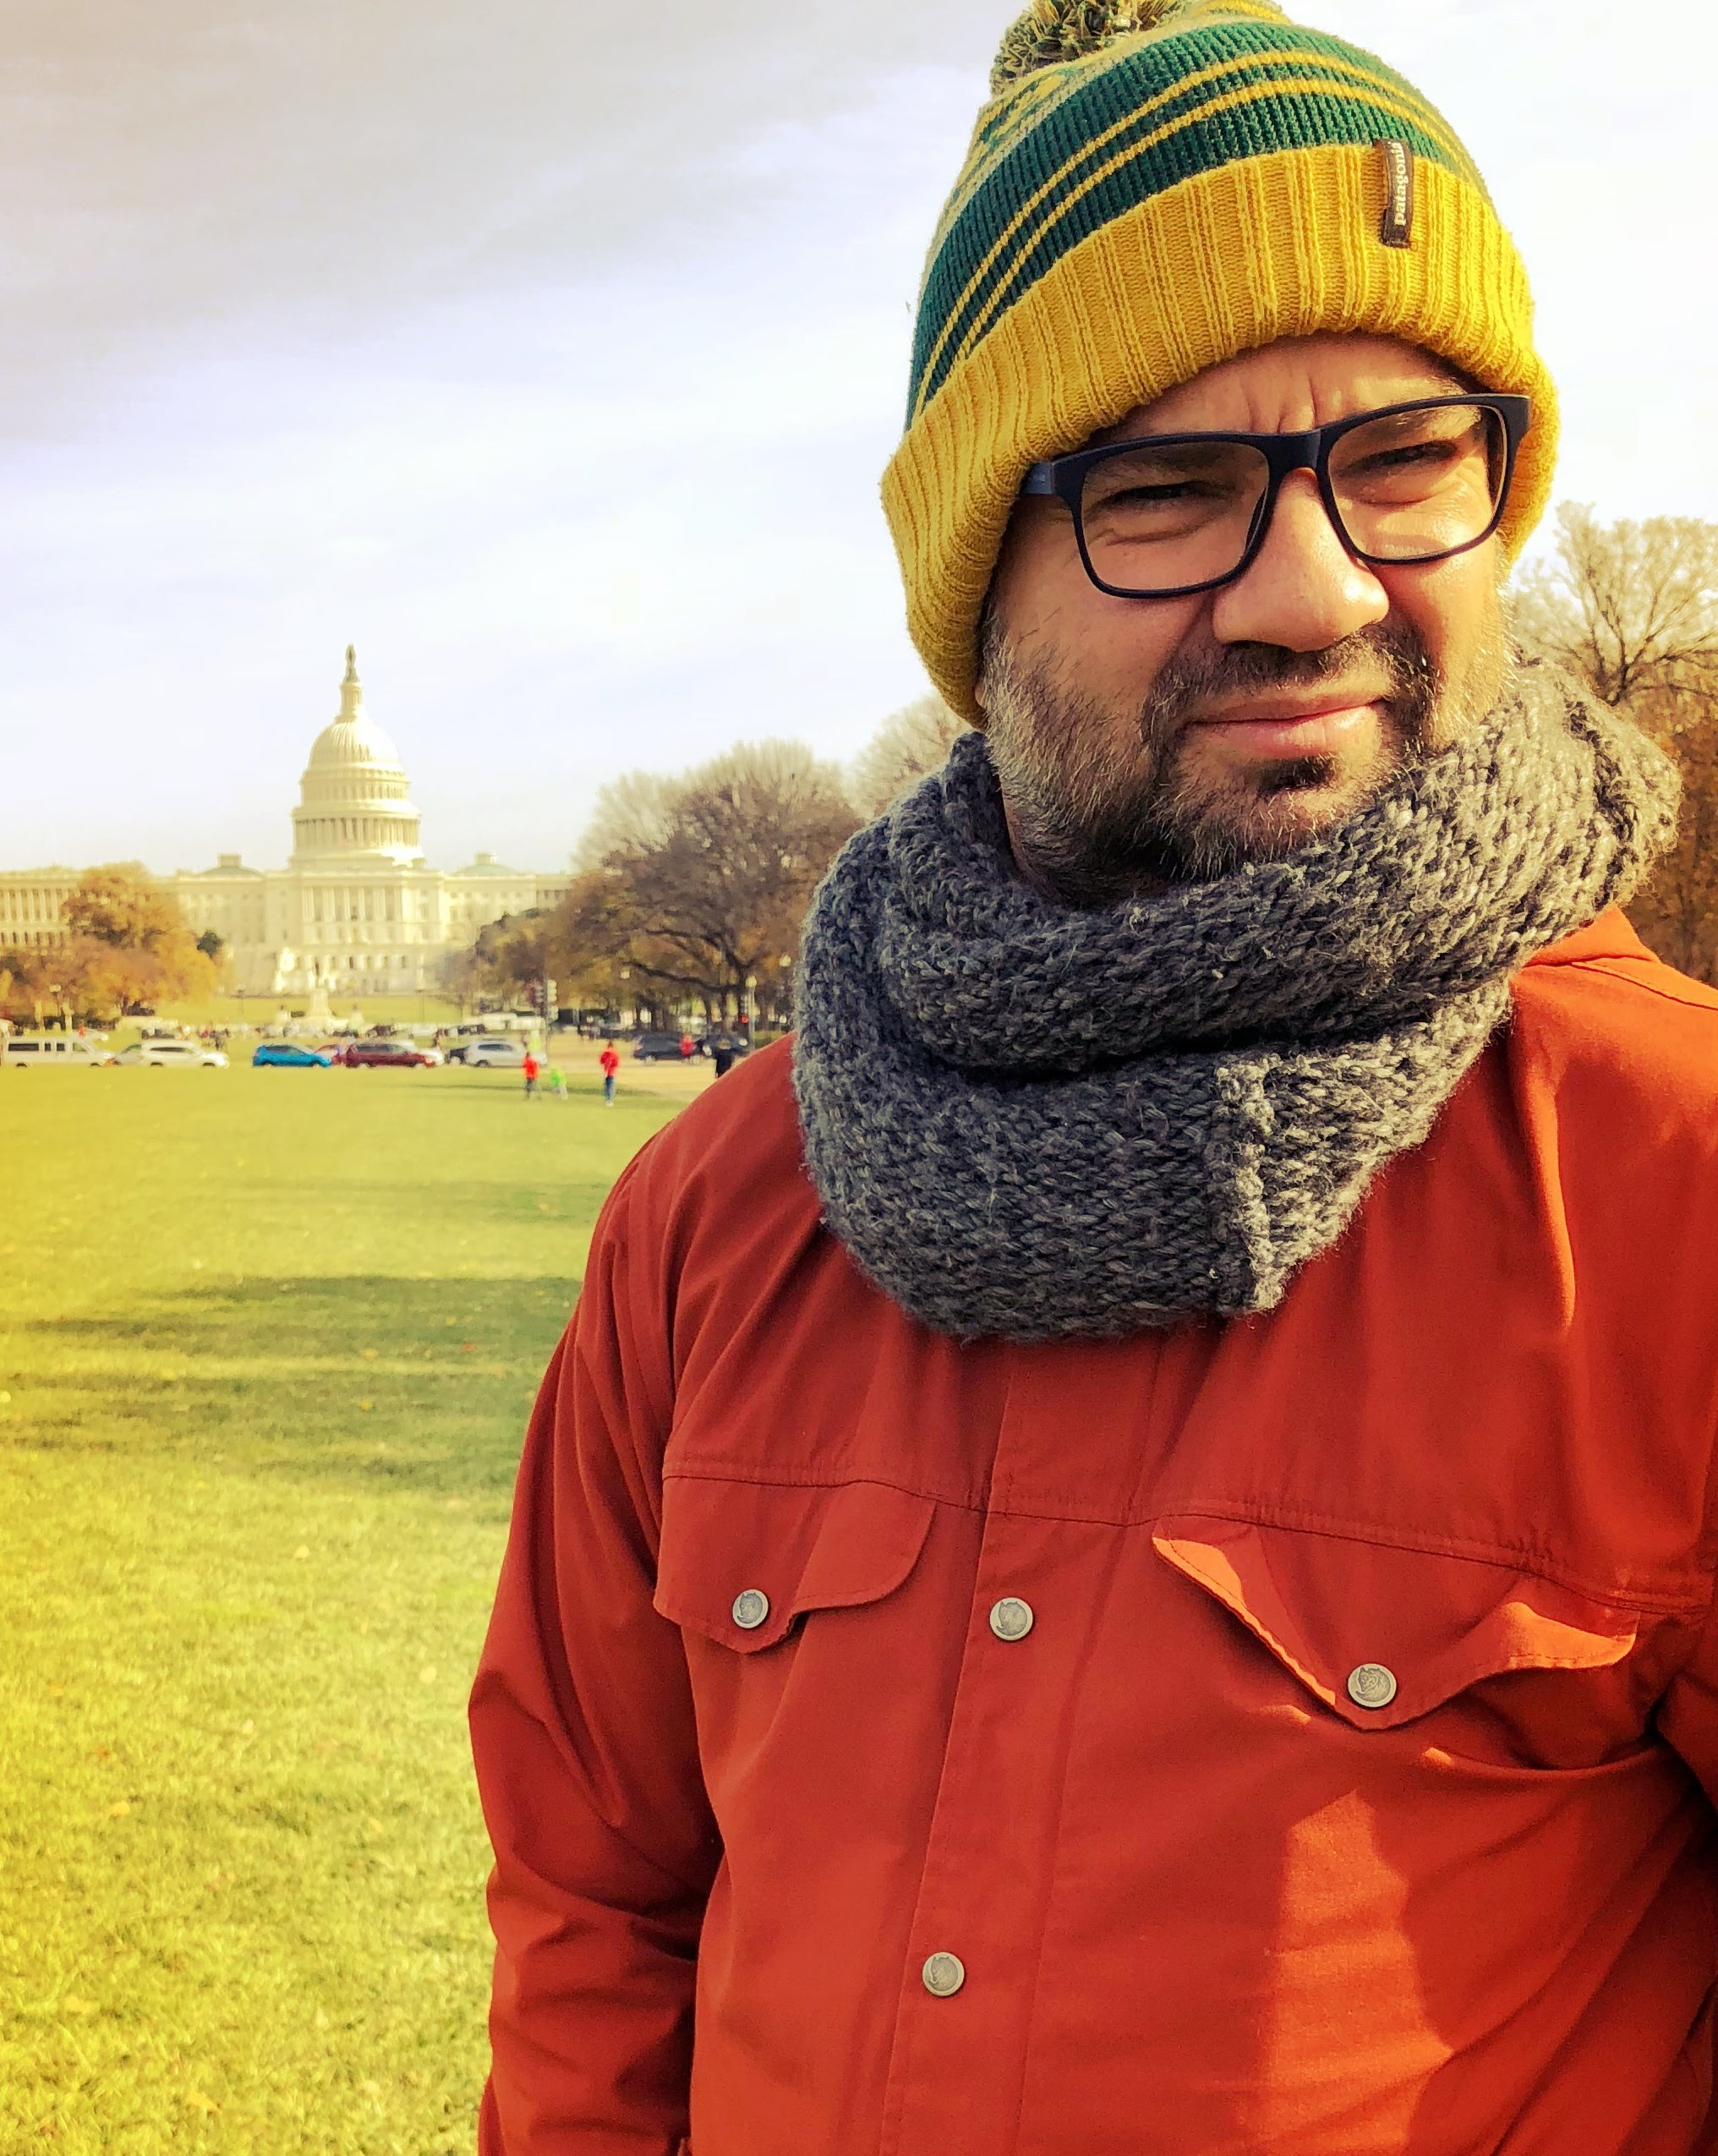 Mihkel Raud in Washington, DC, with the Capitol Hill in the background.